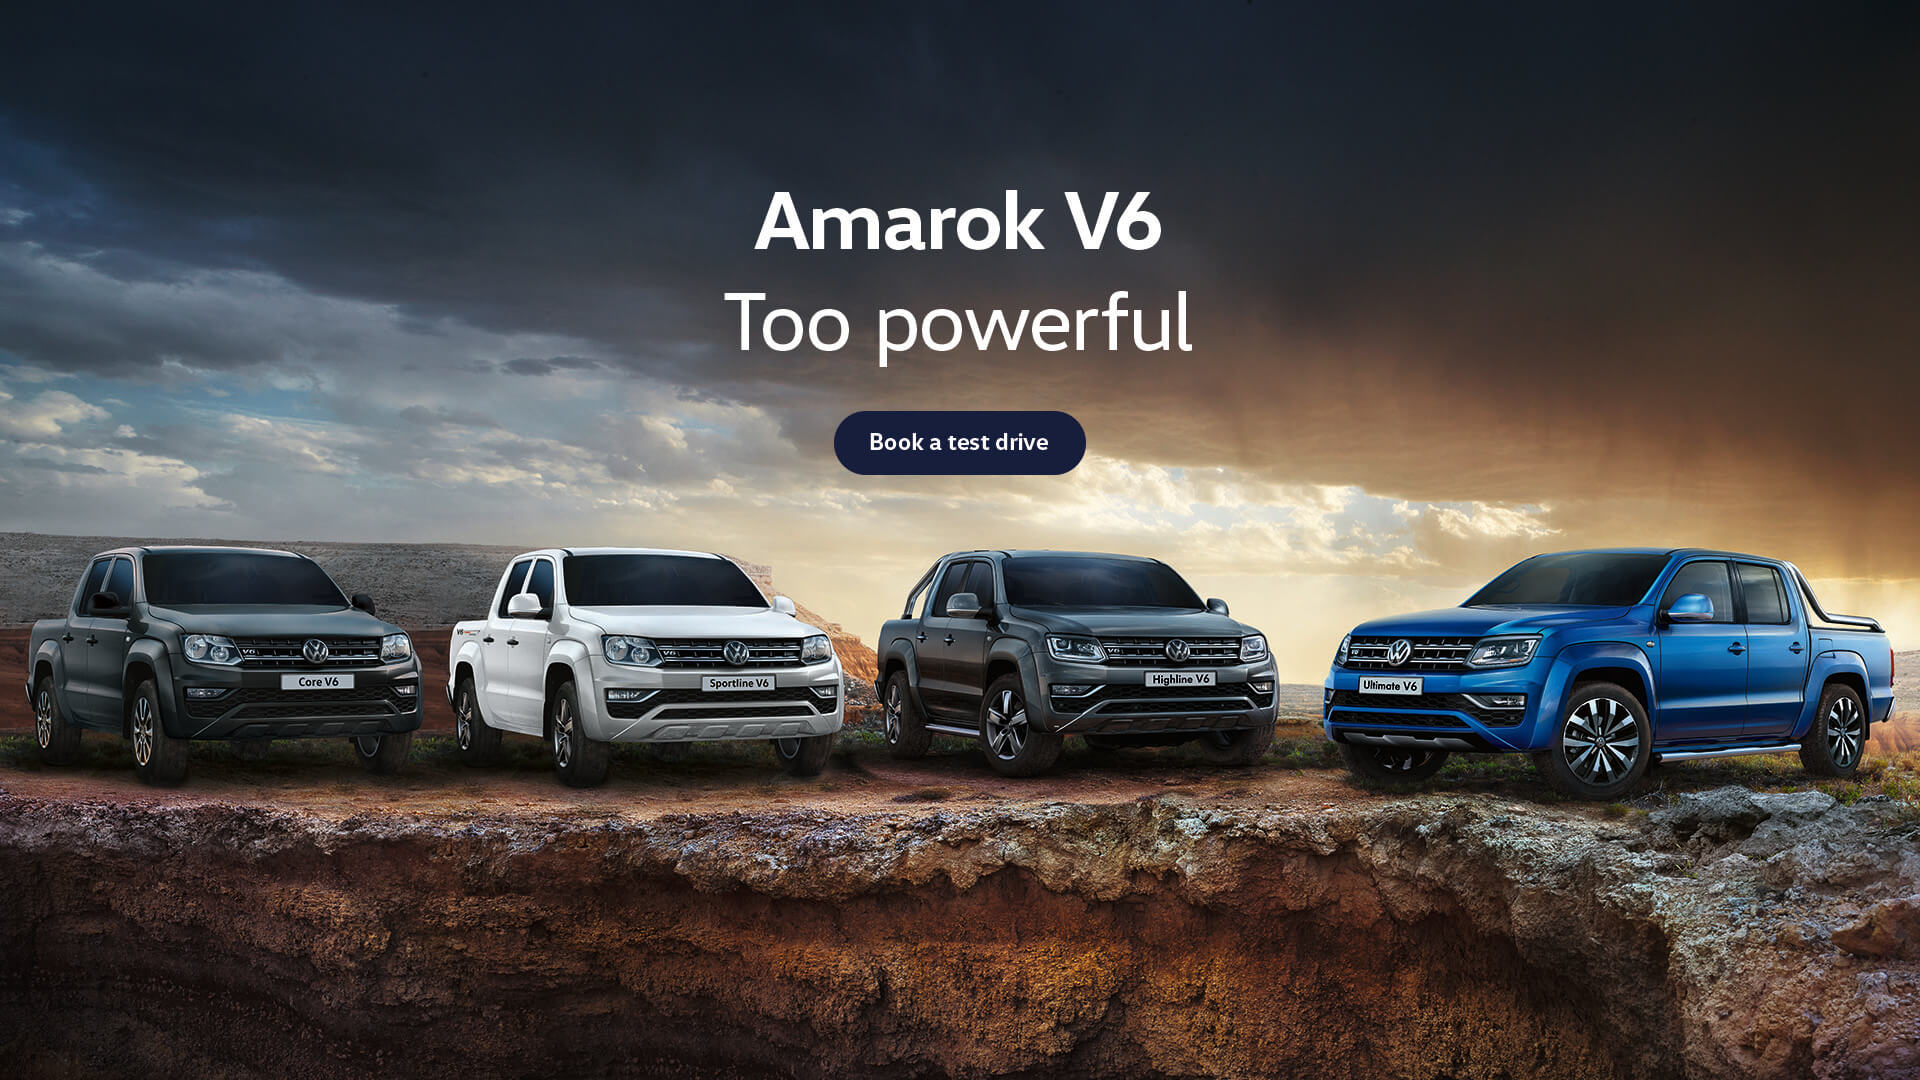 Amarok V6. Too powerful. Test drive today at Woodleys Volkswagen, Tamworth